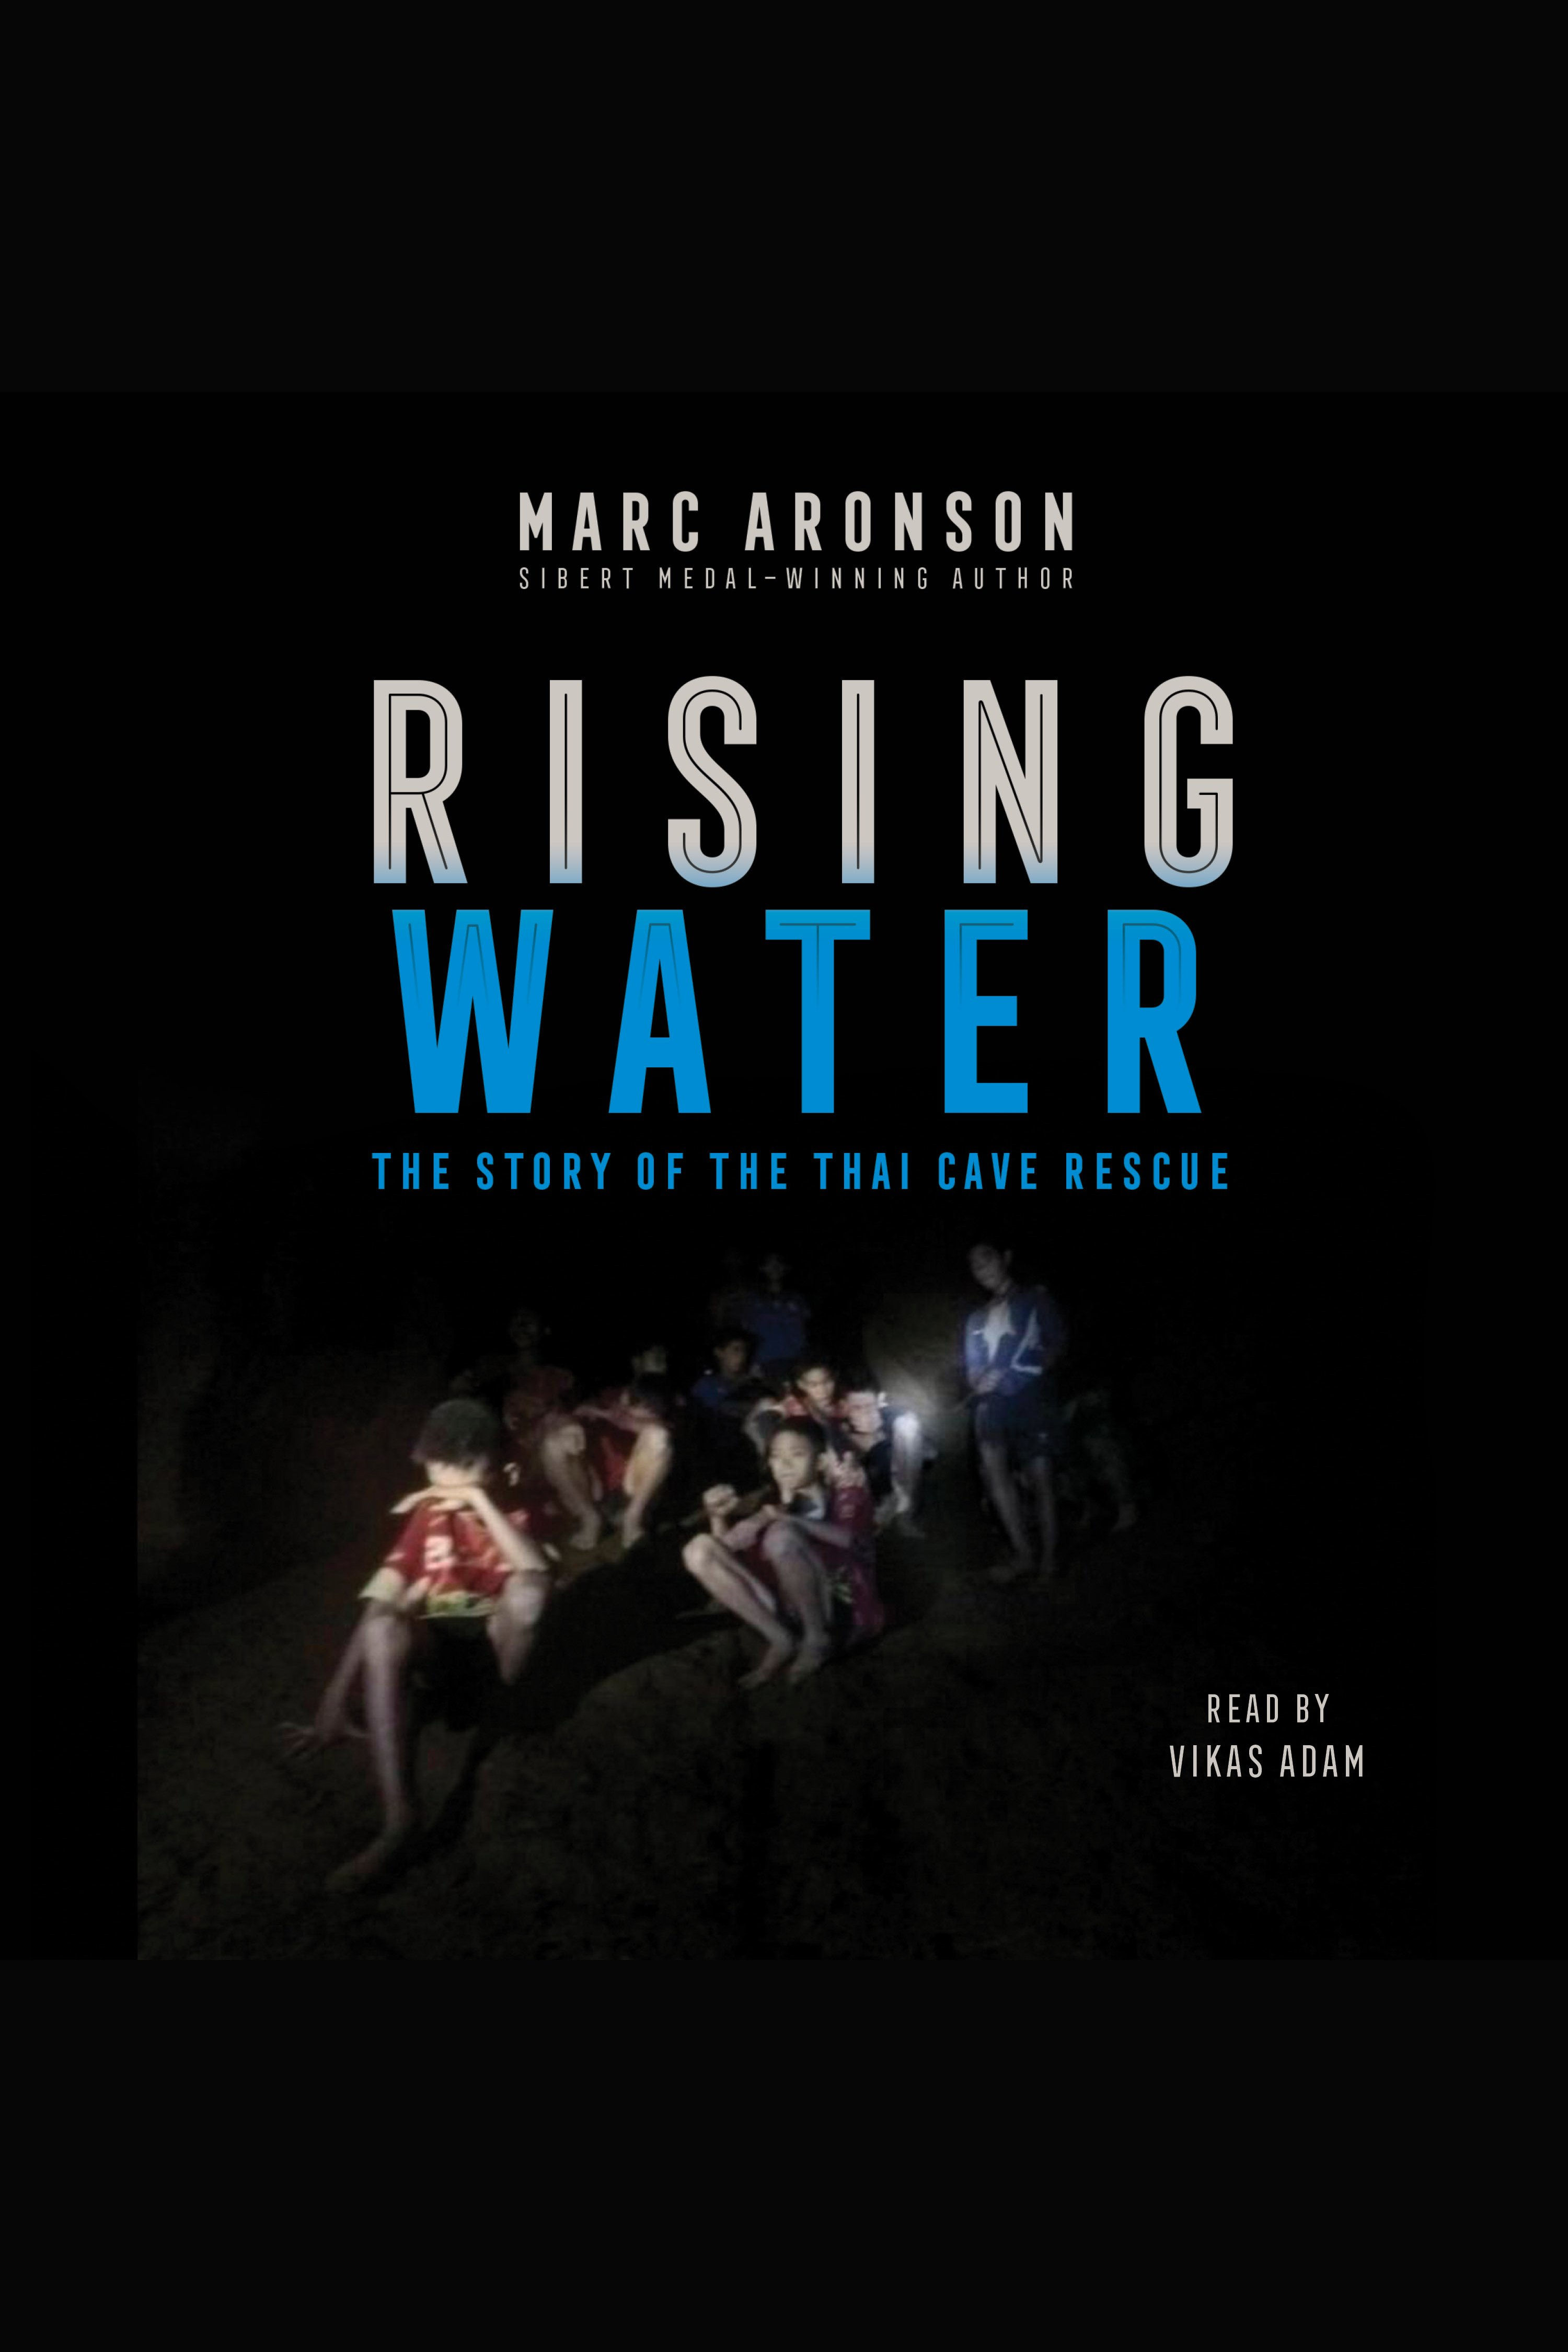 Rising water the story of the Thai cave rescue cover image